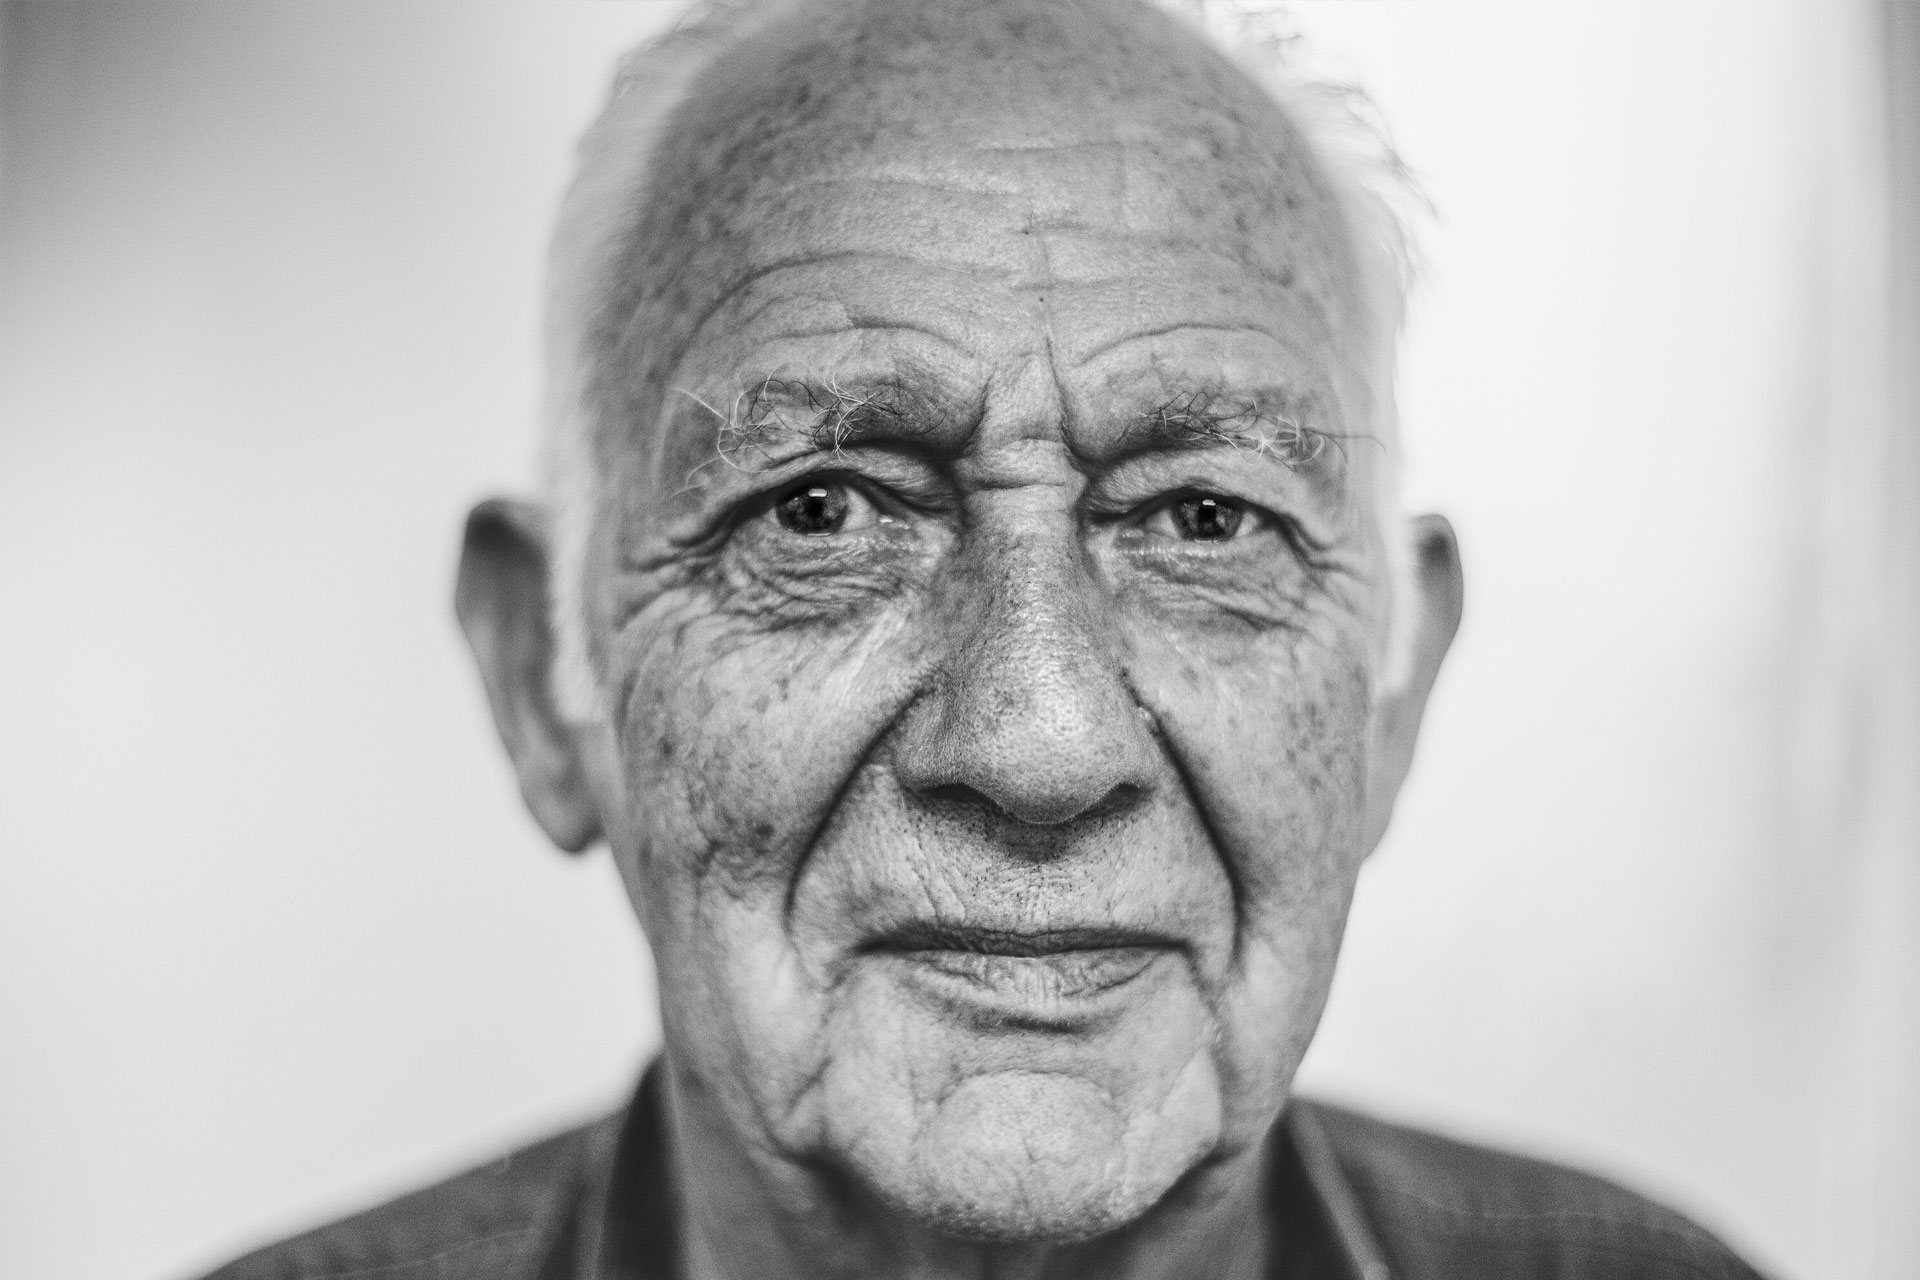 Black and white portrait of an elderly man